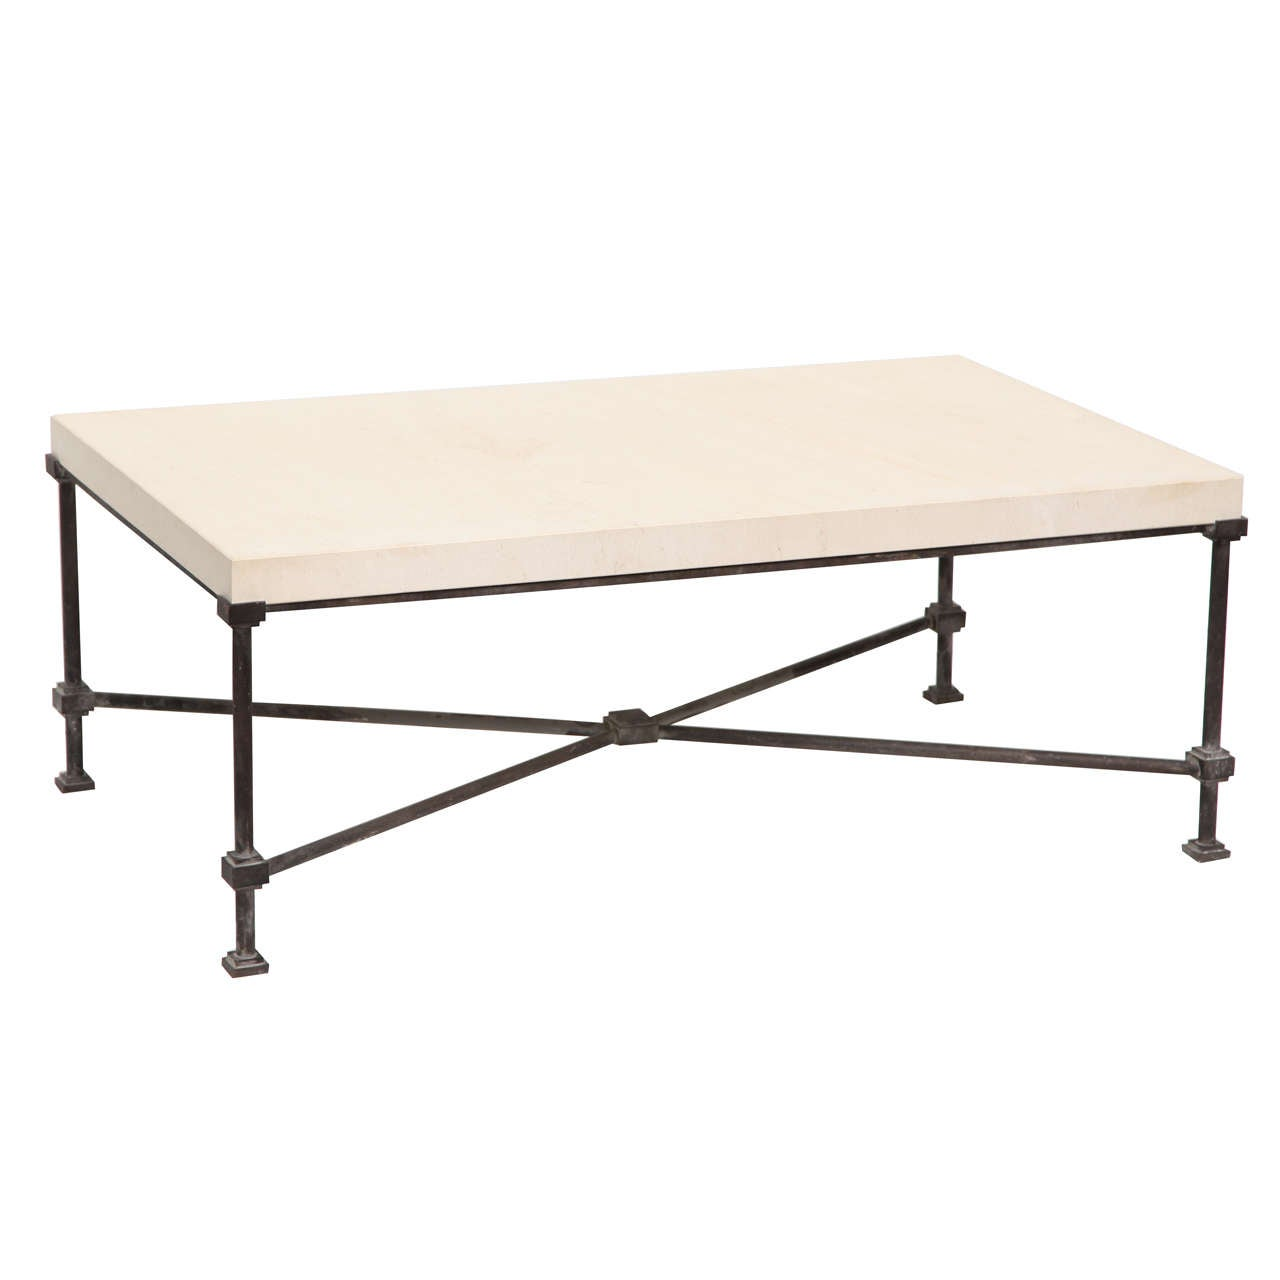 Limestone top coffee table with metal base at 1stdibs for Limestone coffee table